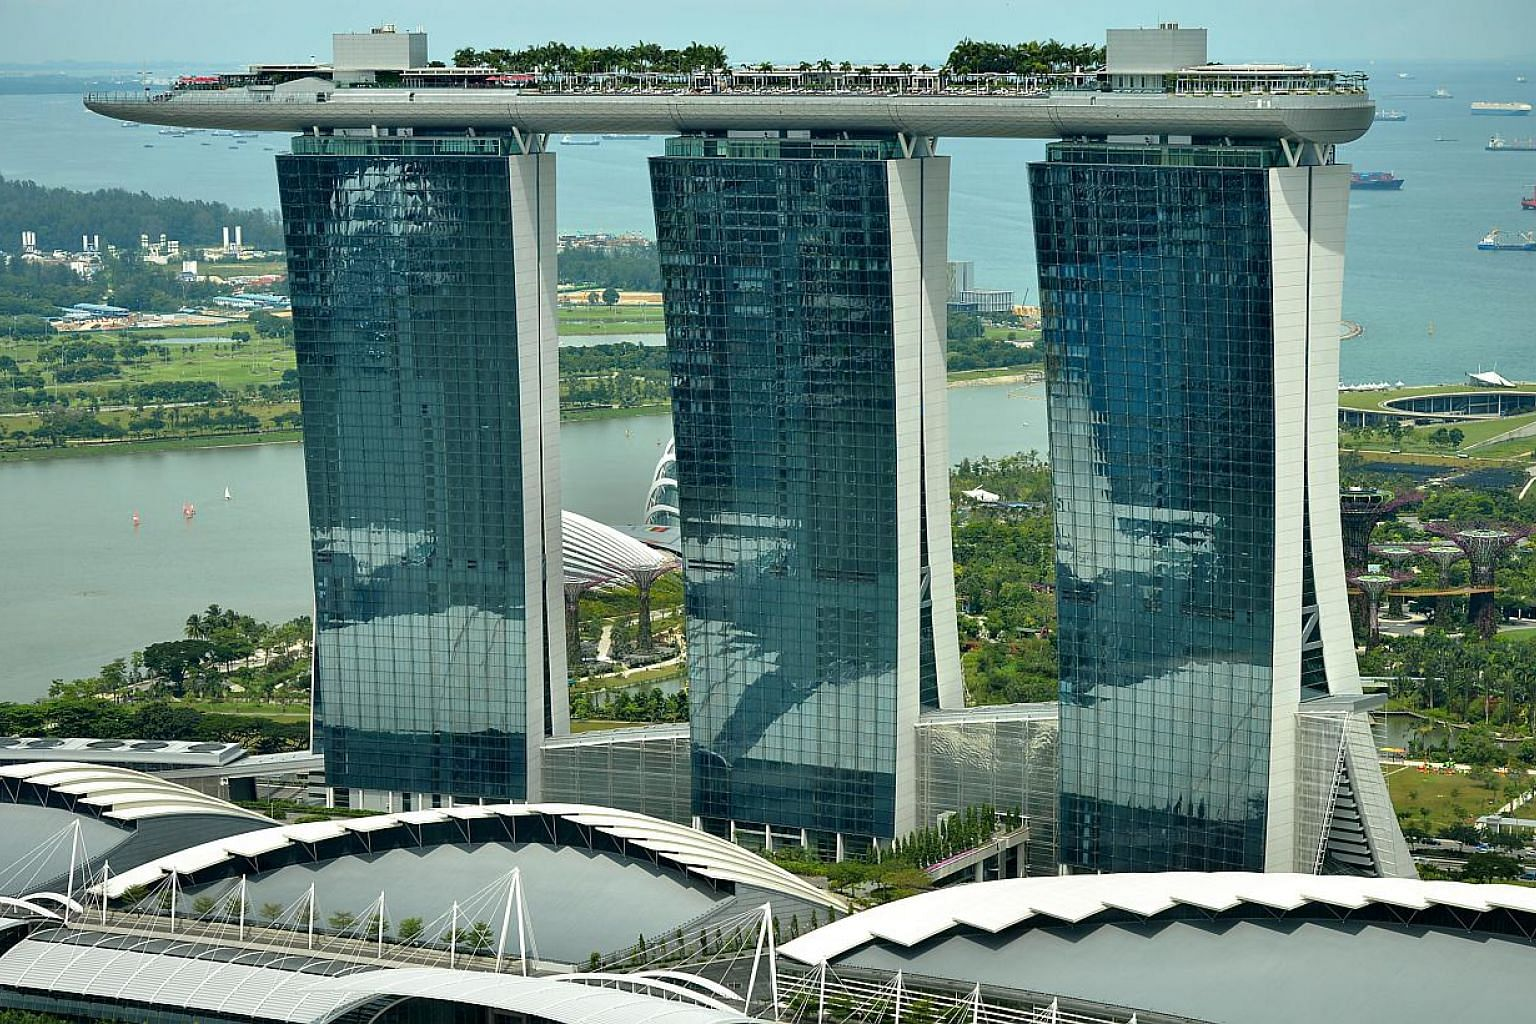 The Marina Bay Sands (MBS) hotel resort seen from the Ocean Financial Centre. Shark's fin dishes will no longer be served at restaurants owned and operated by Marina Bay Sands (MBS), the integrated resort announced on Wednesday. -- PHOTO: ST FIL